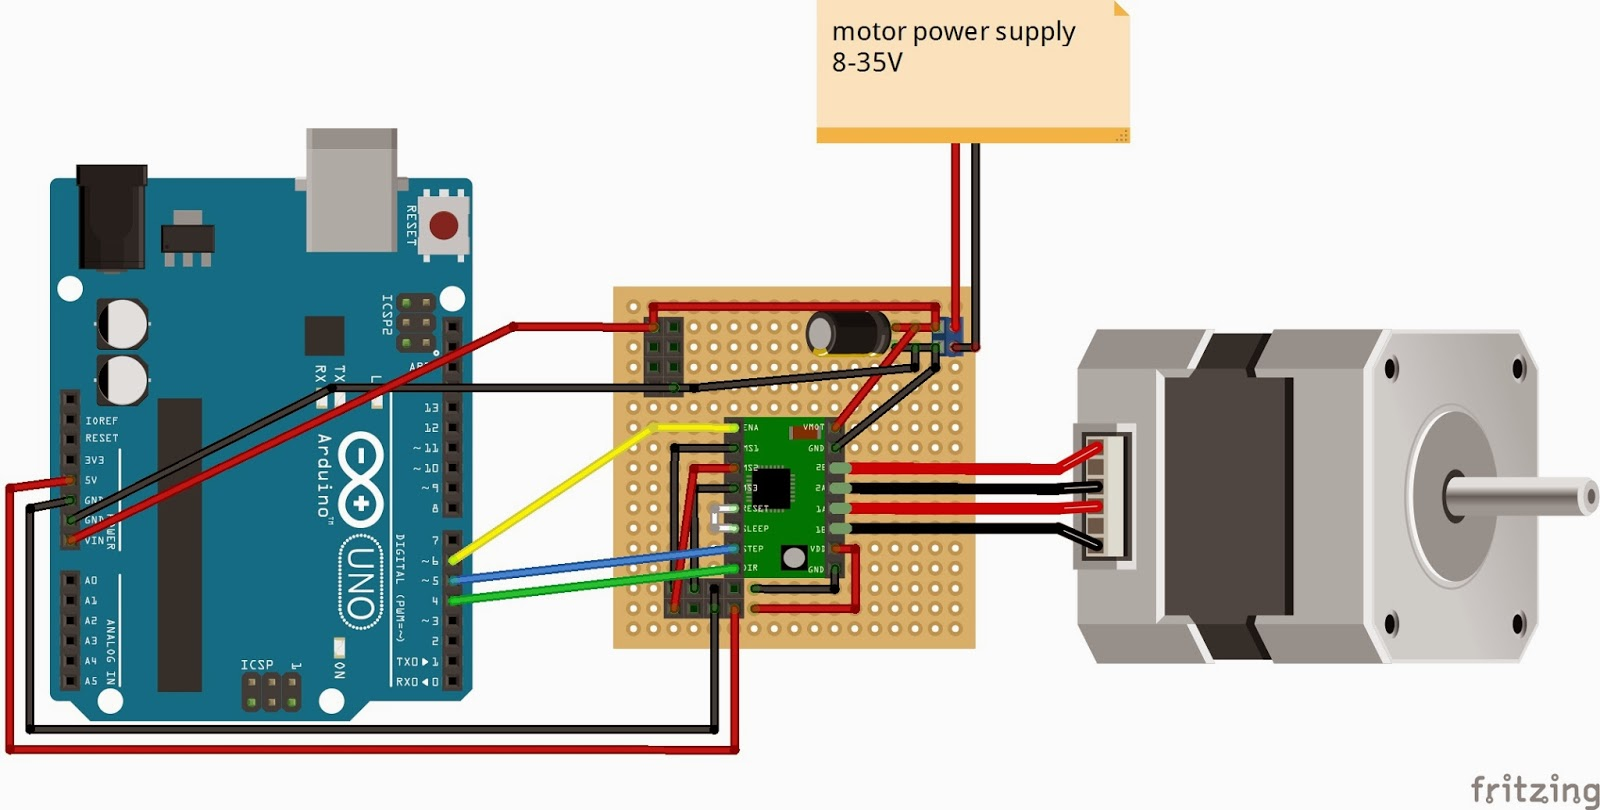 4 wire motor connection diagram 7 trailer cable stepper controller schematic get free image